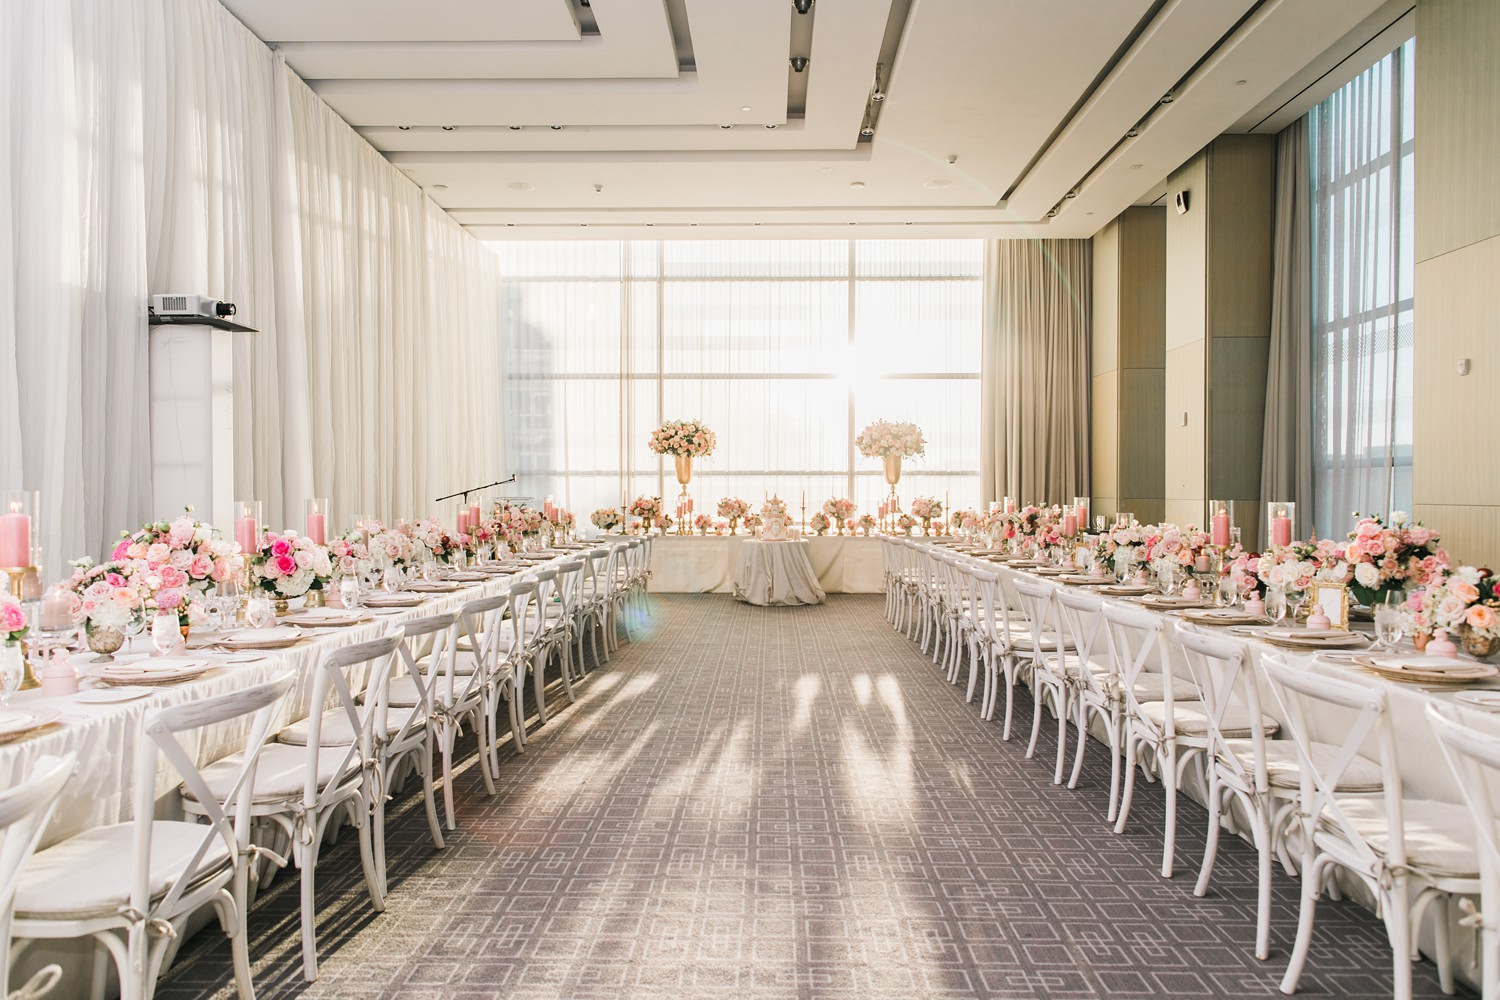 Wedding Reception Decor Vinci Room Luxury Yorkville Toronto Four Season Hotel Wedding Photos with Chinese Bride and Groom